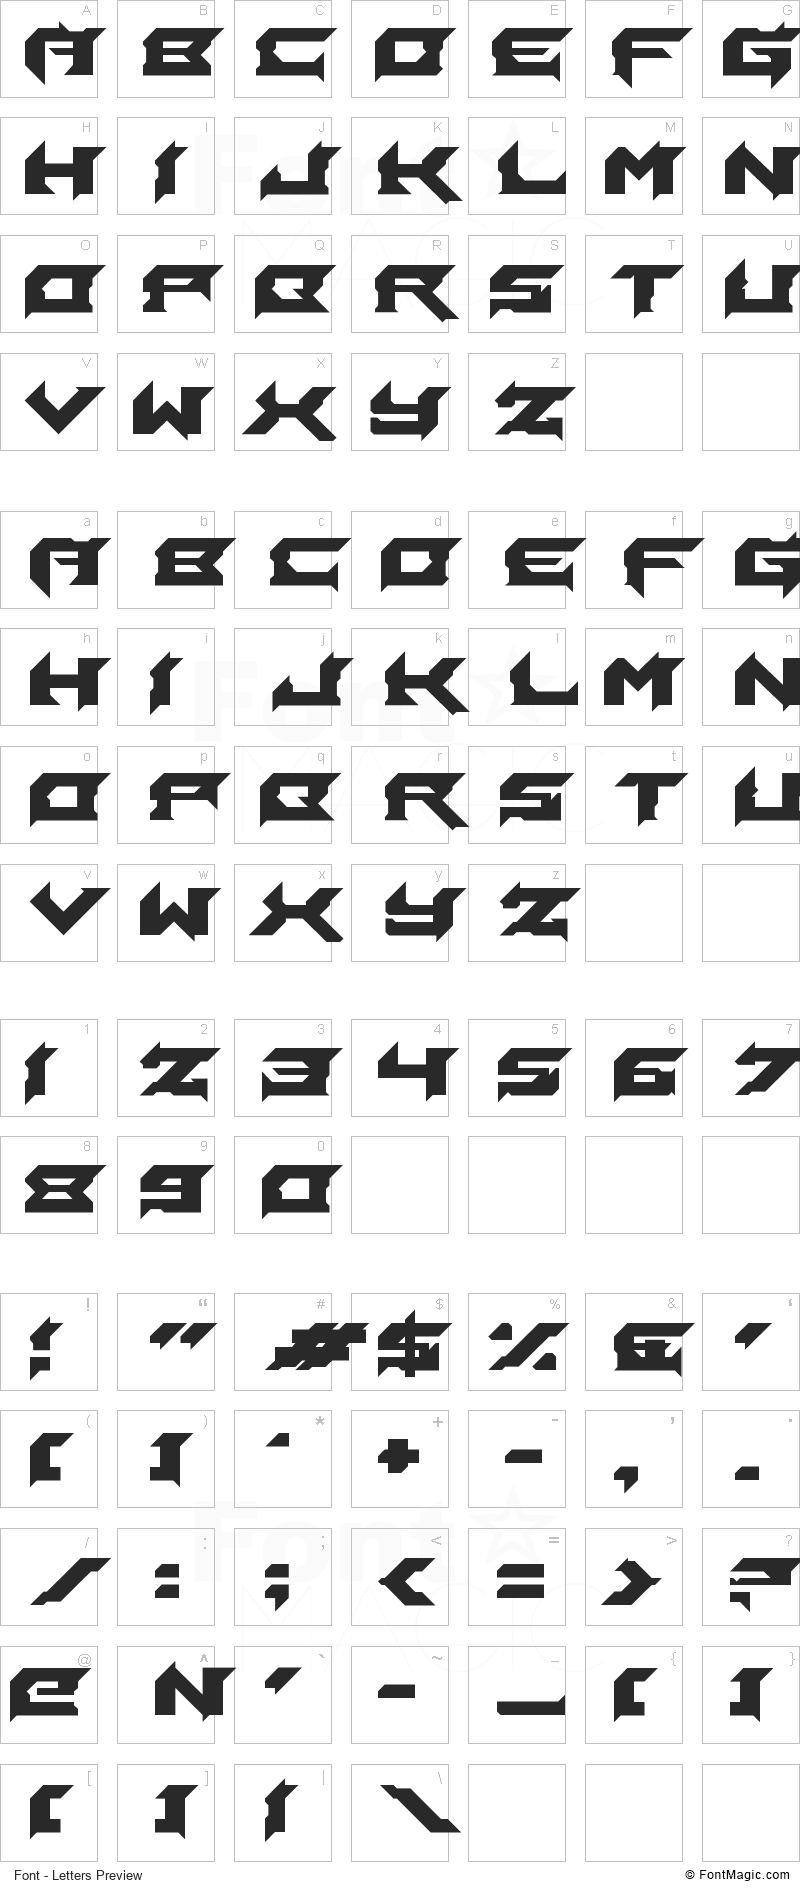 Laceration Font - All Latters Preview Chart